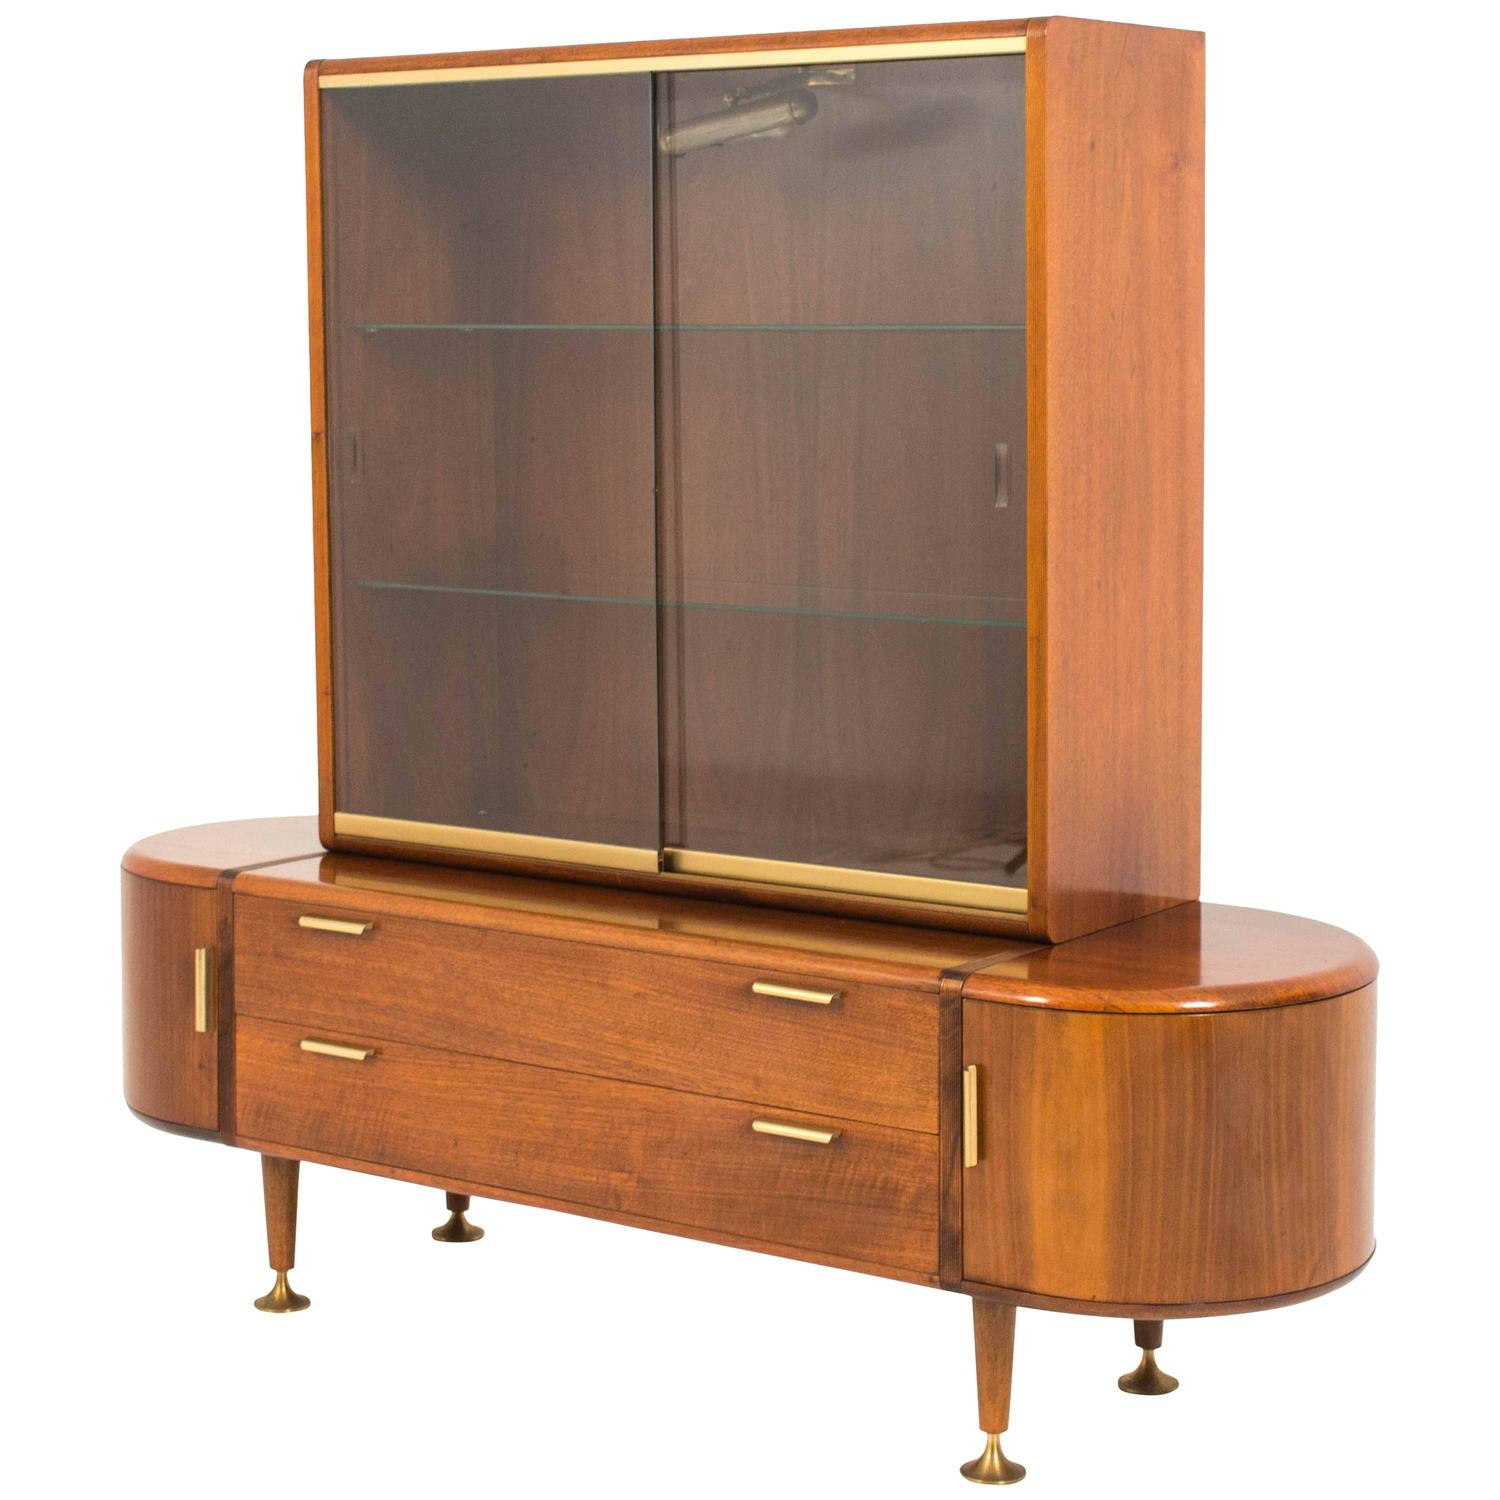 stunning mid century modern vitrine by a a patijn for poly z for sale at 1stdibs. Black Bedroom Furniture Sets. Home Design Ideas